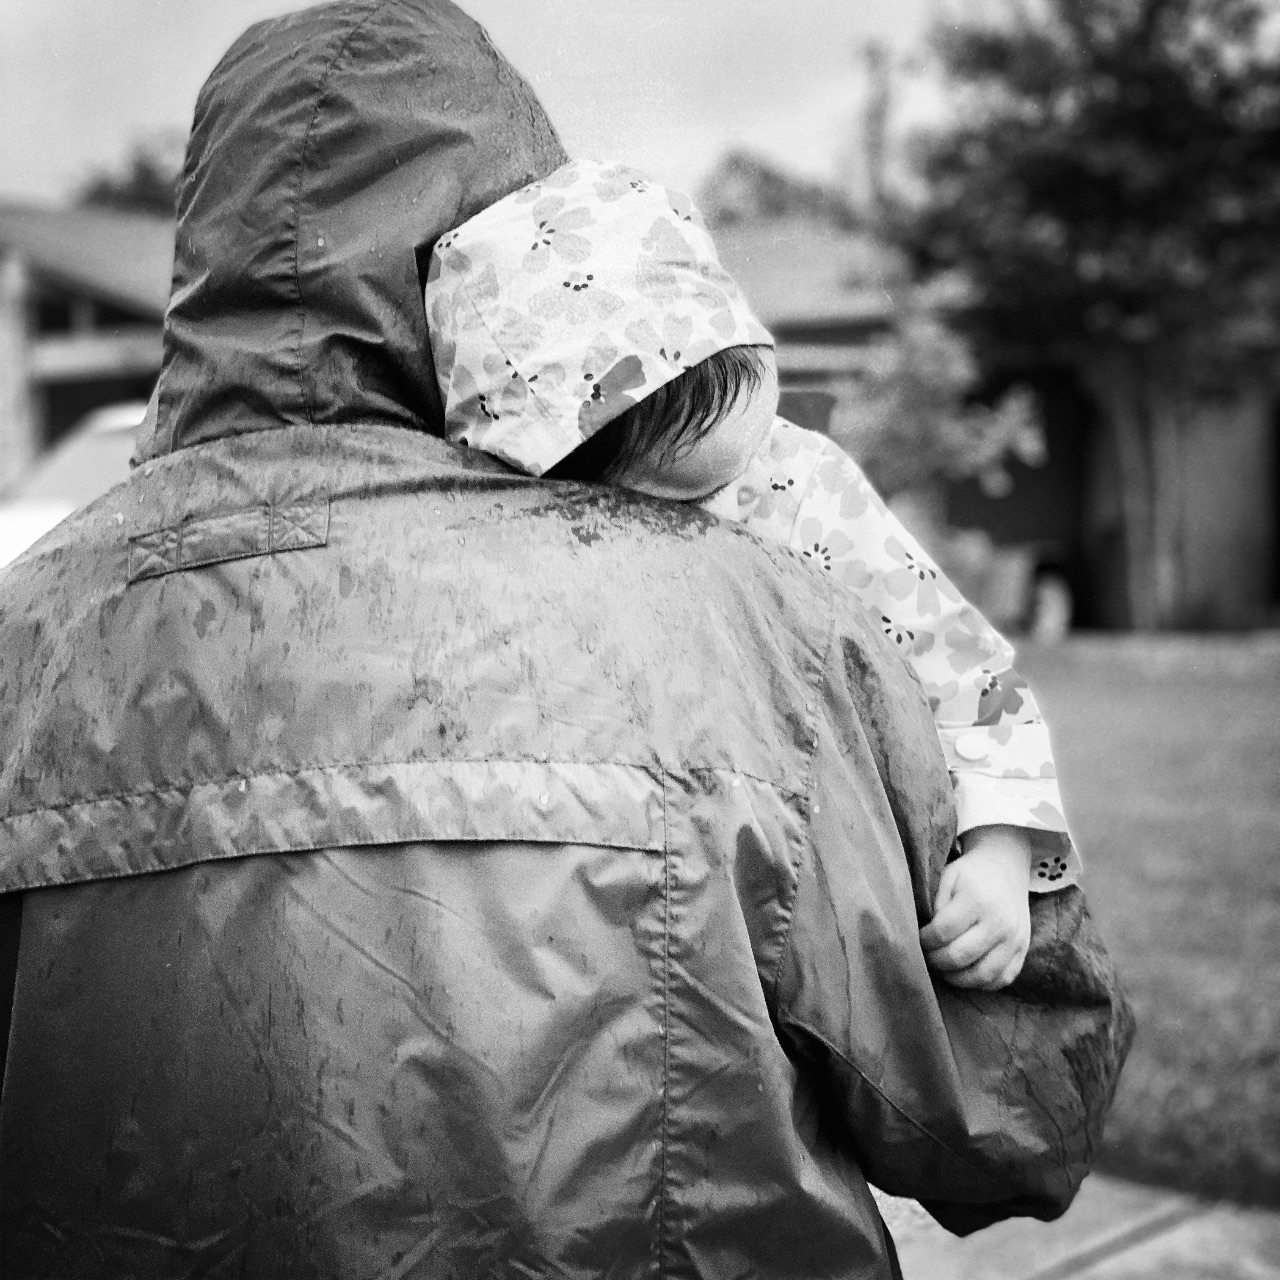 A father holding his toddler daughter in the rain